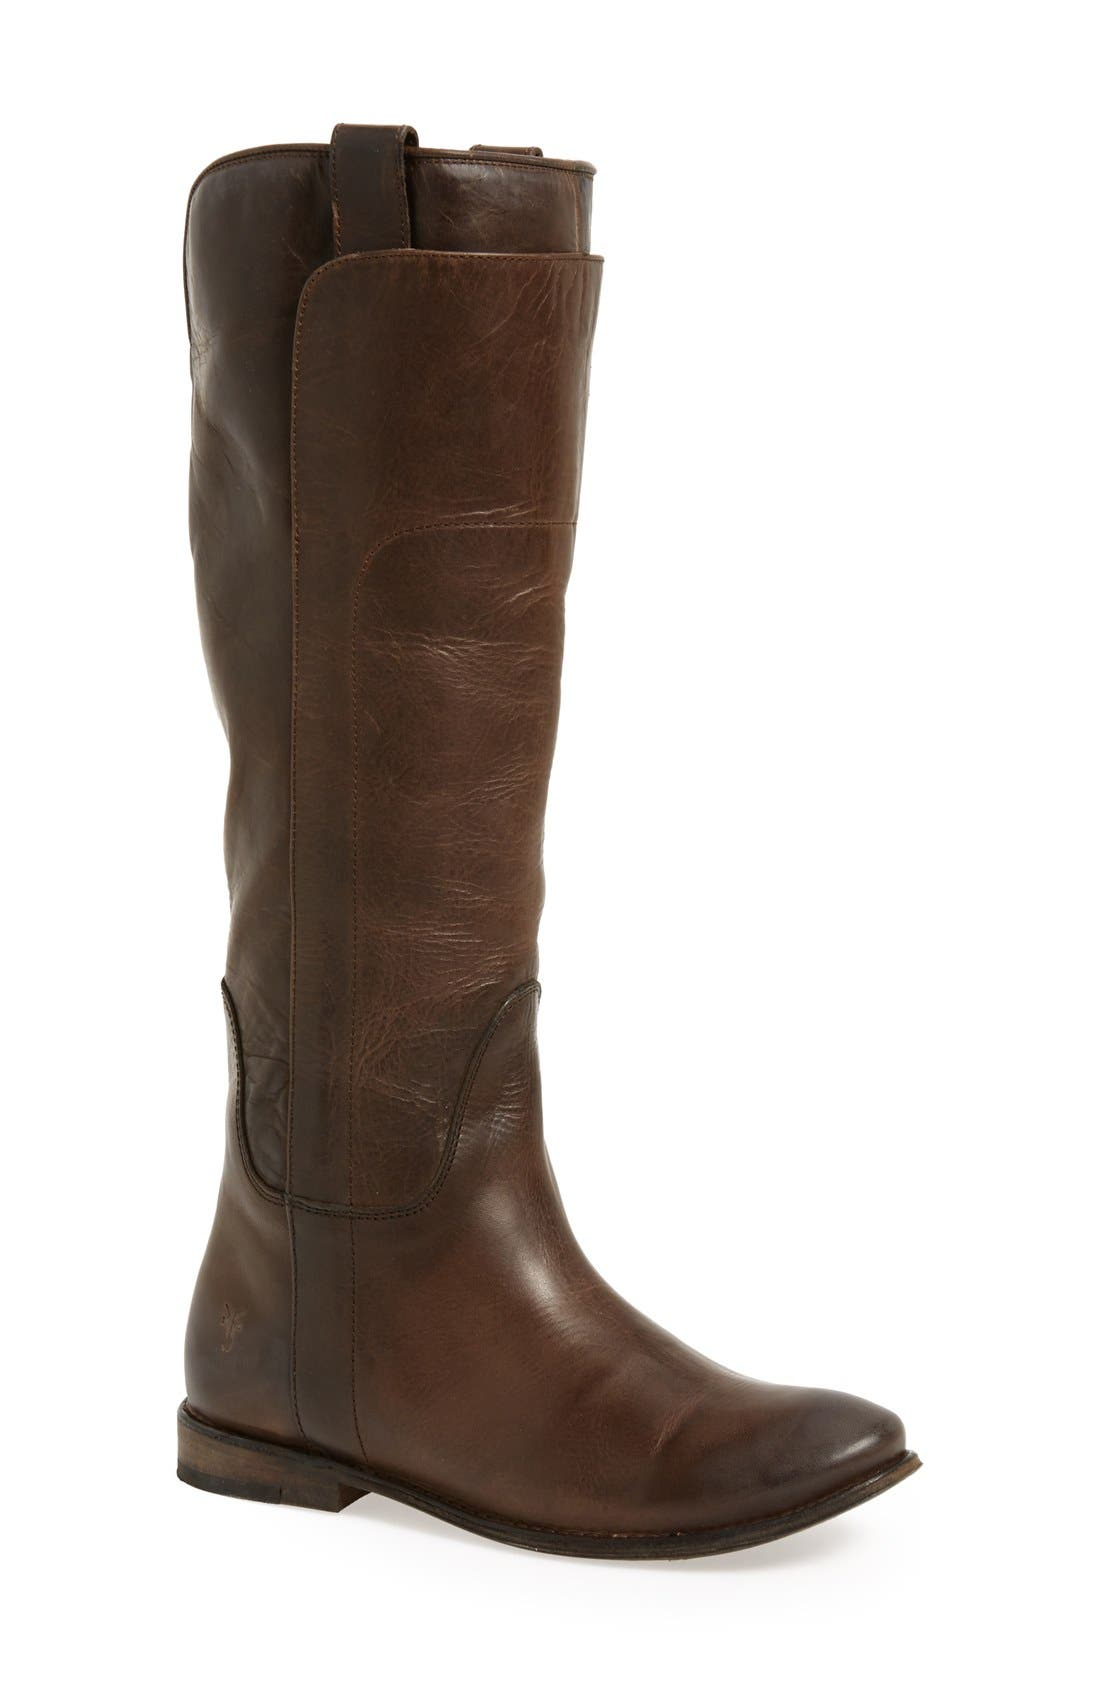 'Paige' Tall Riding Boot,                             Main thumbnail 1, color,                             020